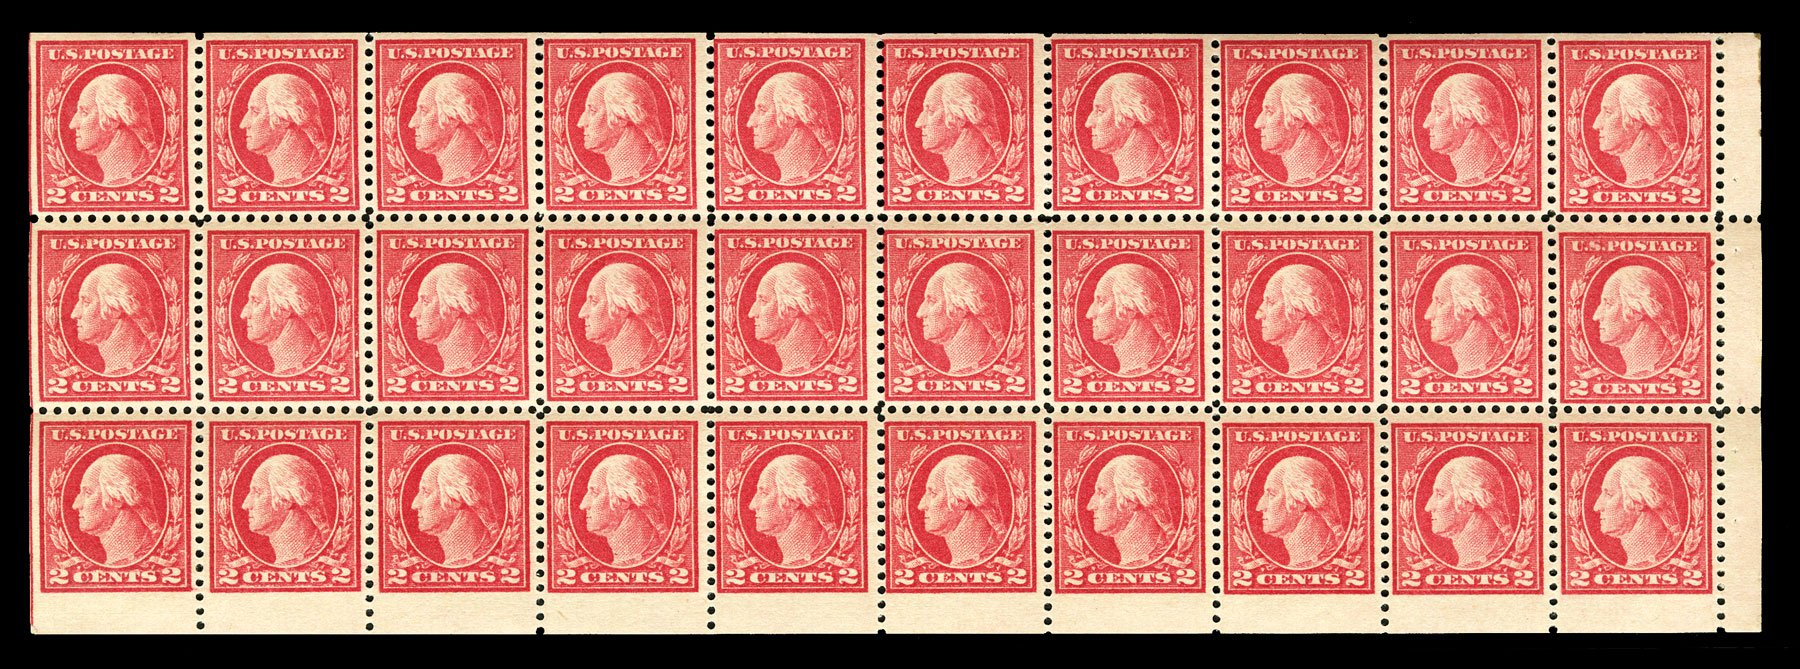 Cost of US Stamps Scott #499 - 2c 1917 Washington Perf 11. Cherrystone Auctions, Jul 2015, Sale 201507, Lot 2167